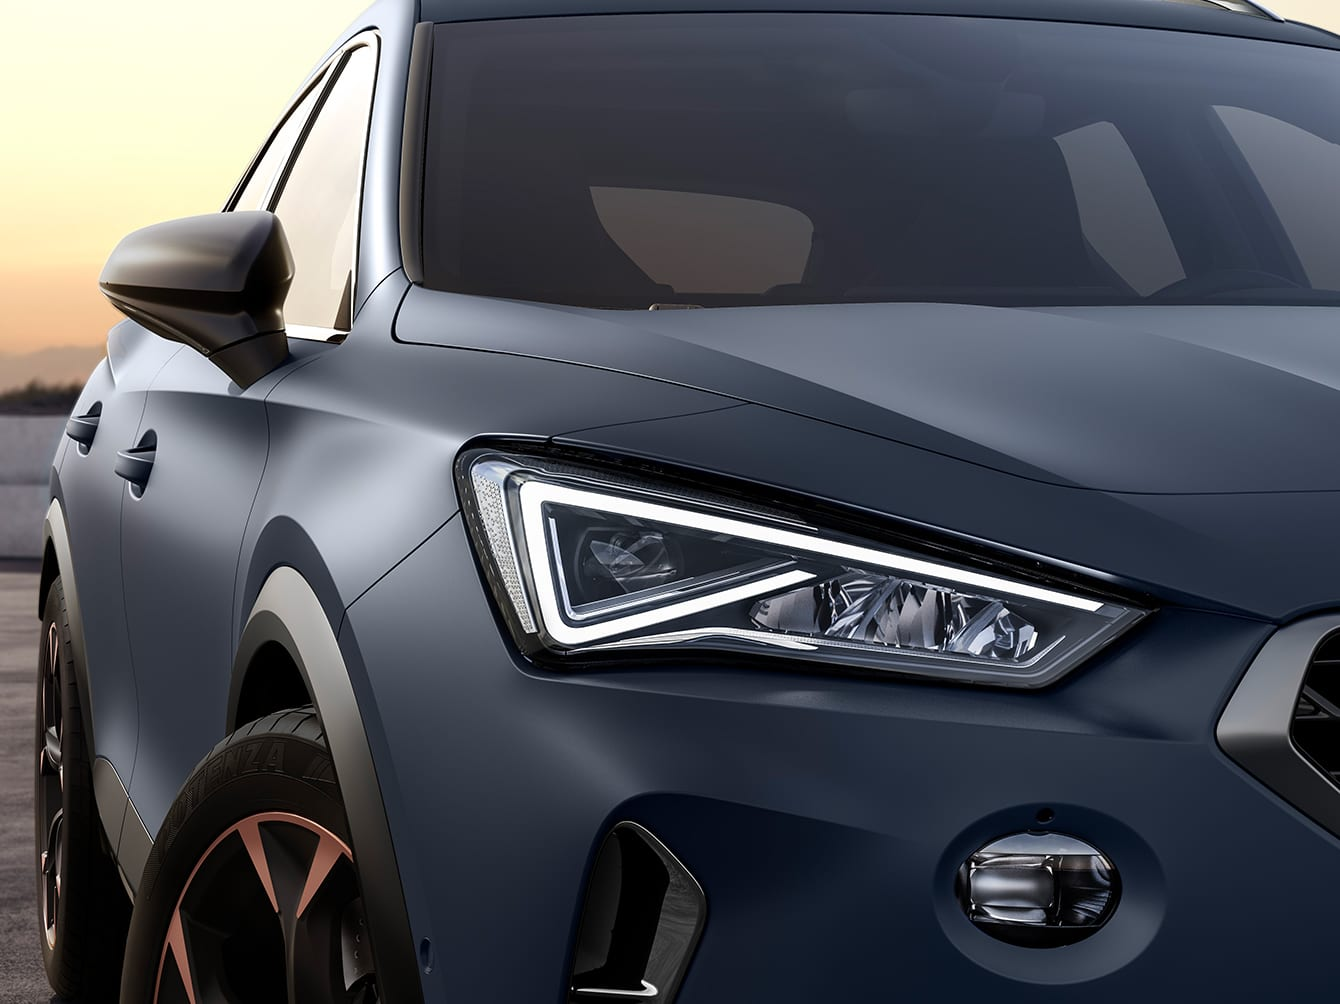 new cupra formentor compact suv with full led lights